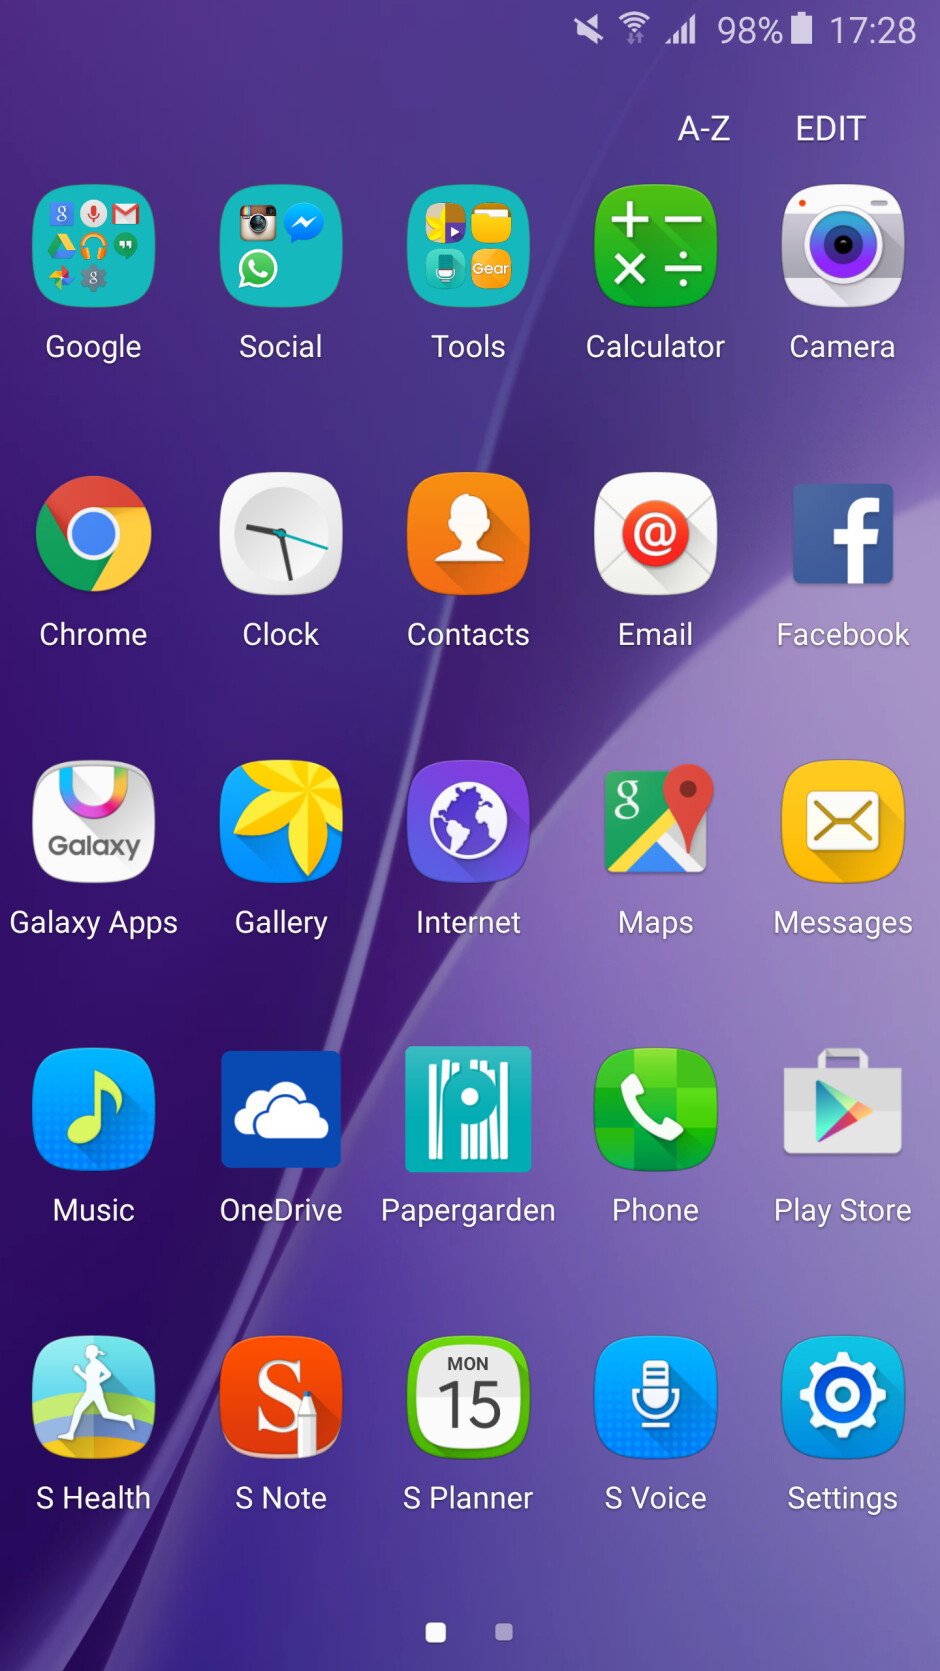 How to claim 100 GB of free OneDrive storage on your Galaxy S6, Note 5 and other Samsung gear